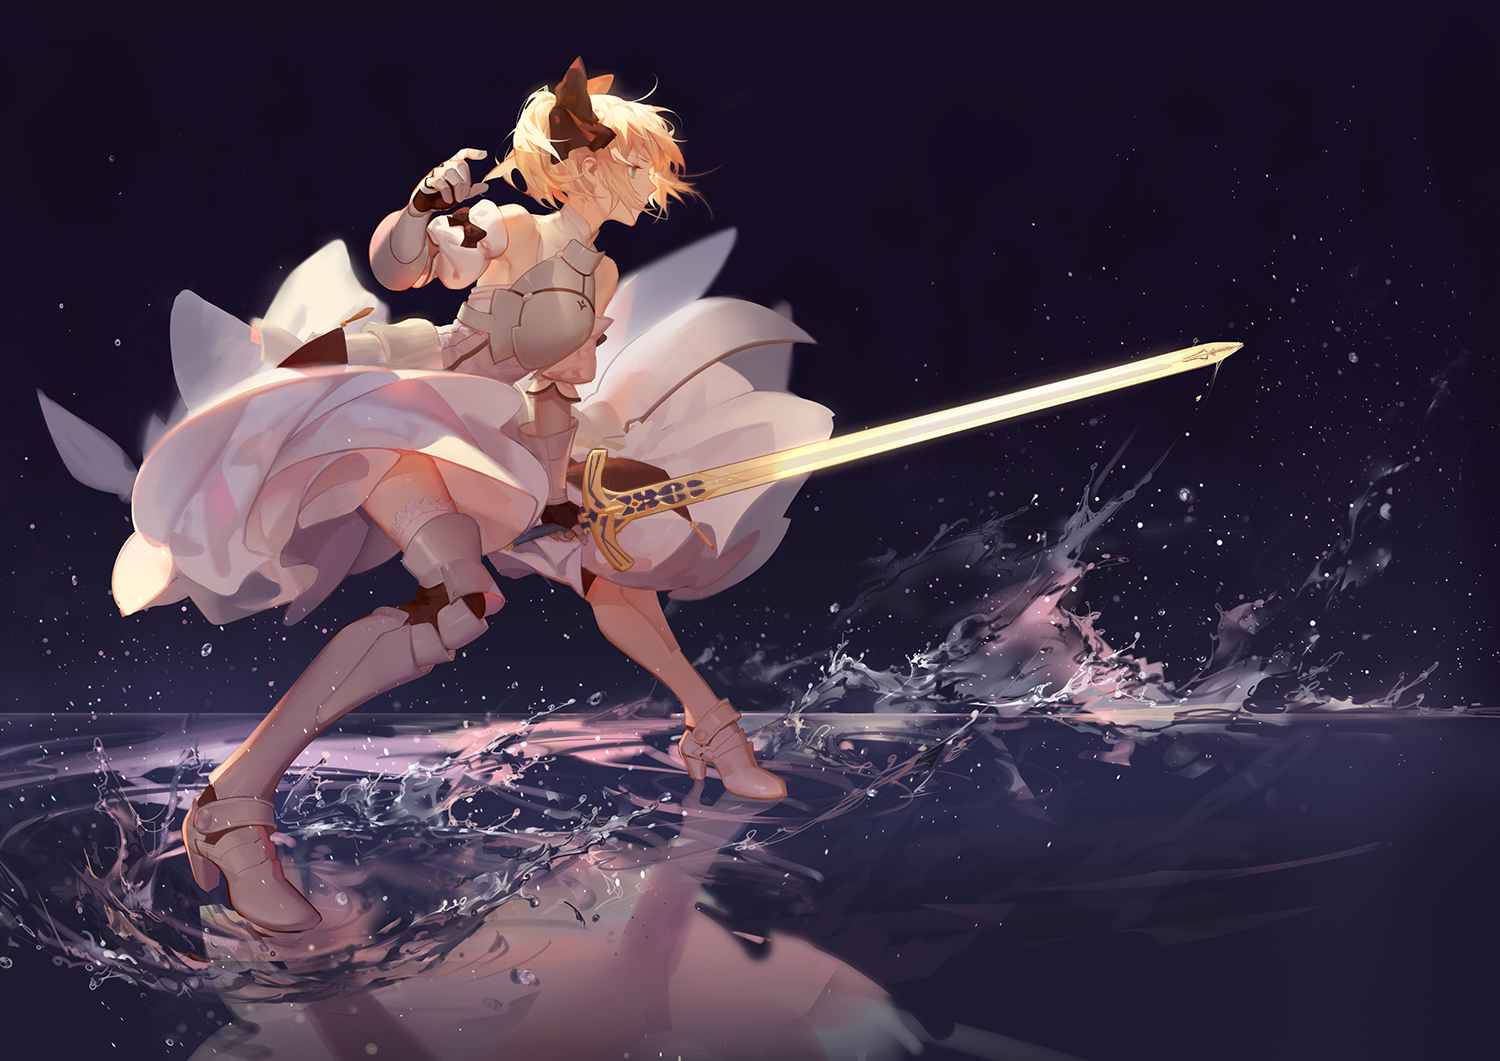 armor artoria_pendragon_(all) asukaziye blonde_hair dress fate_(series) fate/stay_night fate/unlimited_codes reflection ribbons saber saber_lily sword thighhighs water weapon